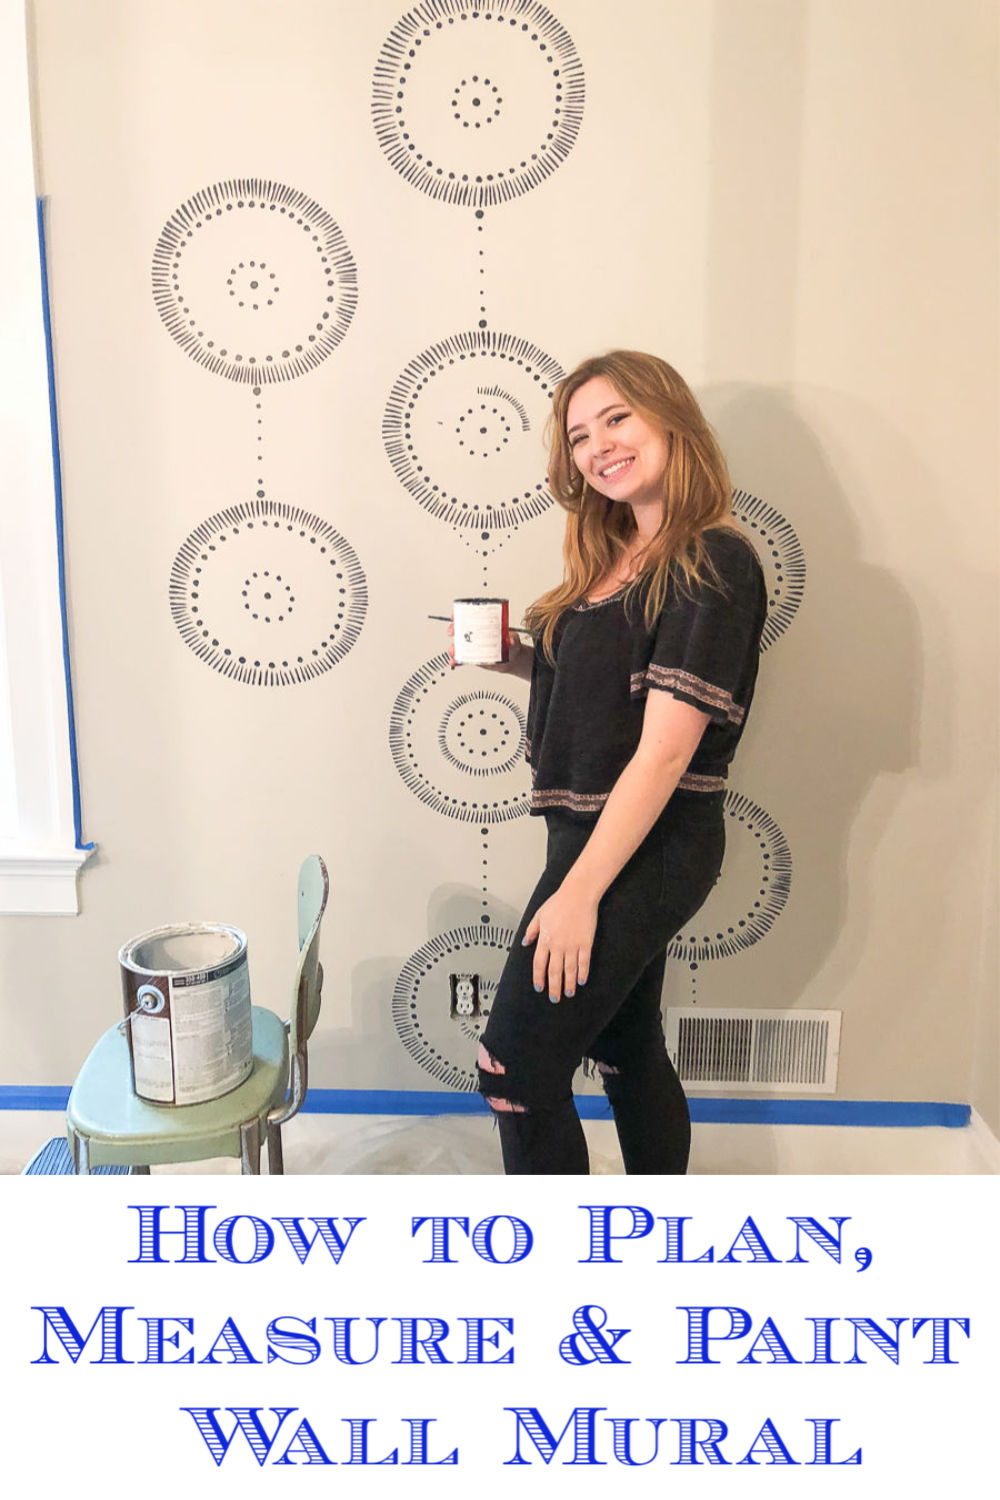 How to paint repeating wall mural - includes tips on how to plan, measure and paint kellyelko.com #paint #wallpaint #wallmural #mural #murals #paintingtips #housepaint #walldecor #walls #paintedwalls #tipsandtricks #howtopaint #kellyelko